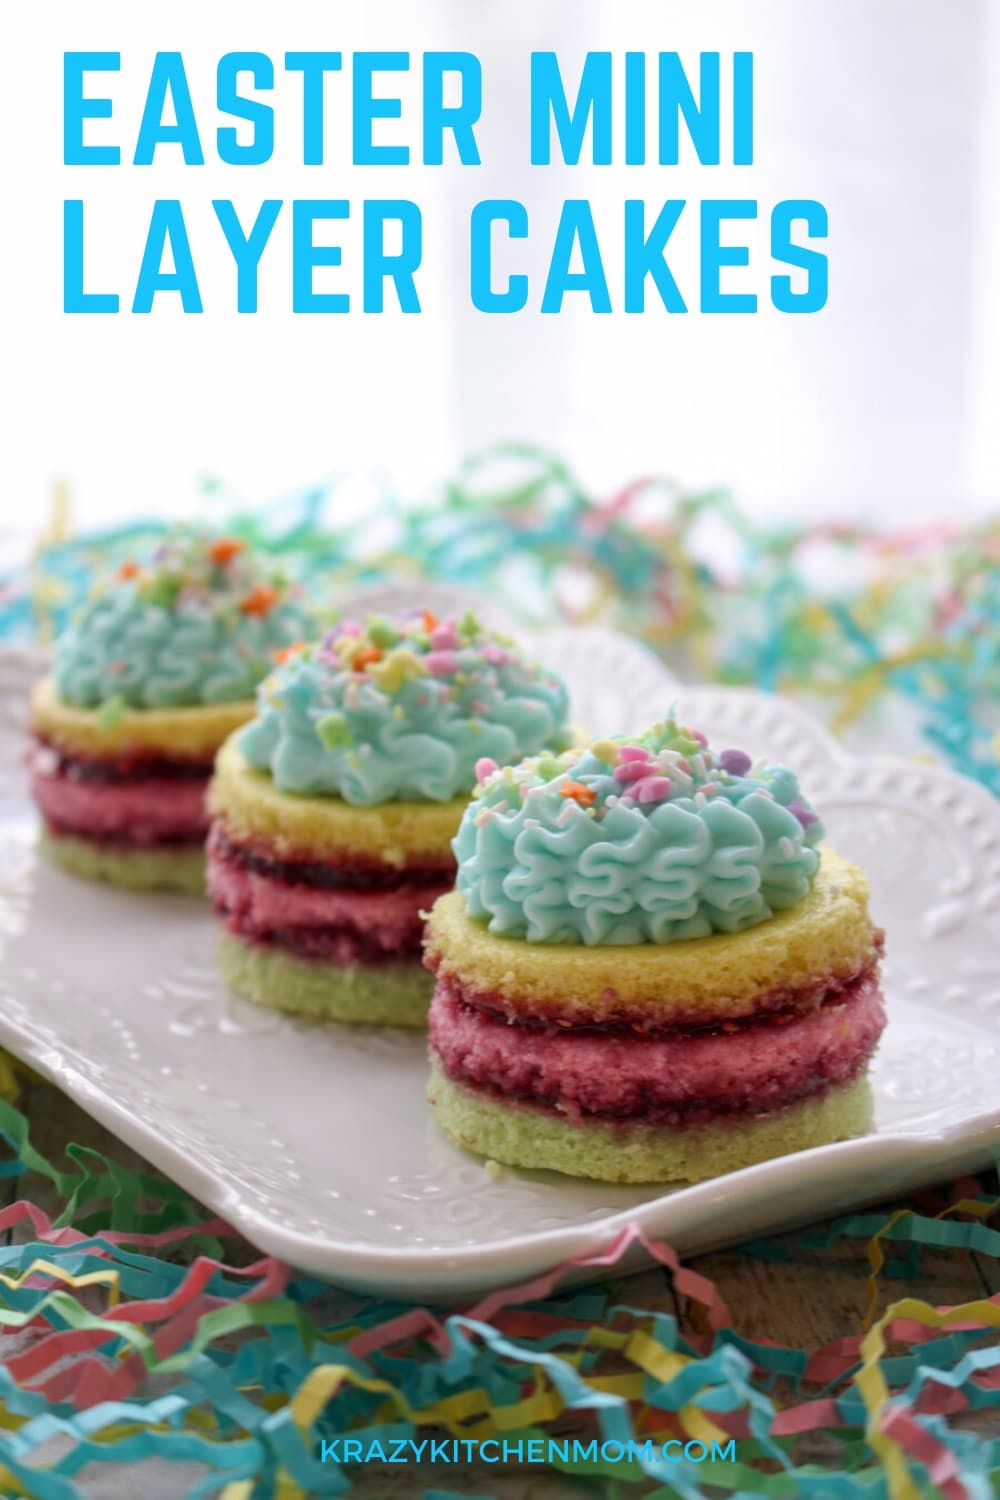 Easter Mini Layer Cakes are made from a box mix and a jar of jam. They are easy to make and pretty to look at. See my step-by-step instructions.  via @krazykitchenmom